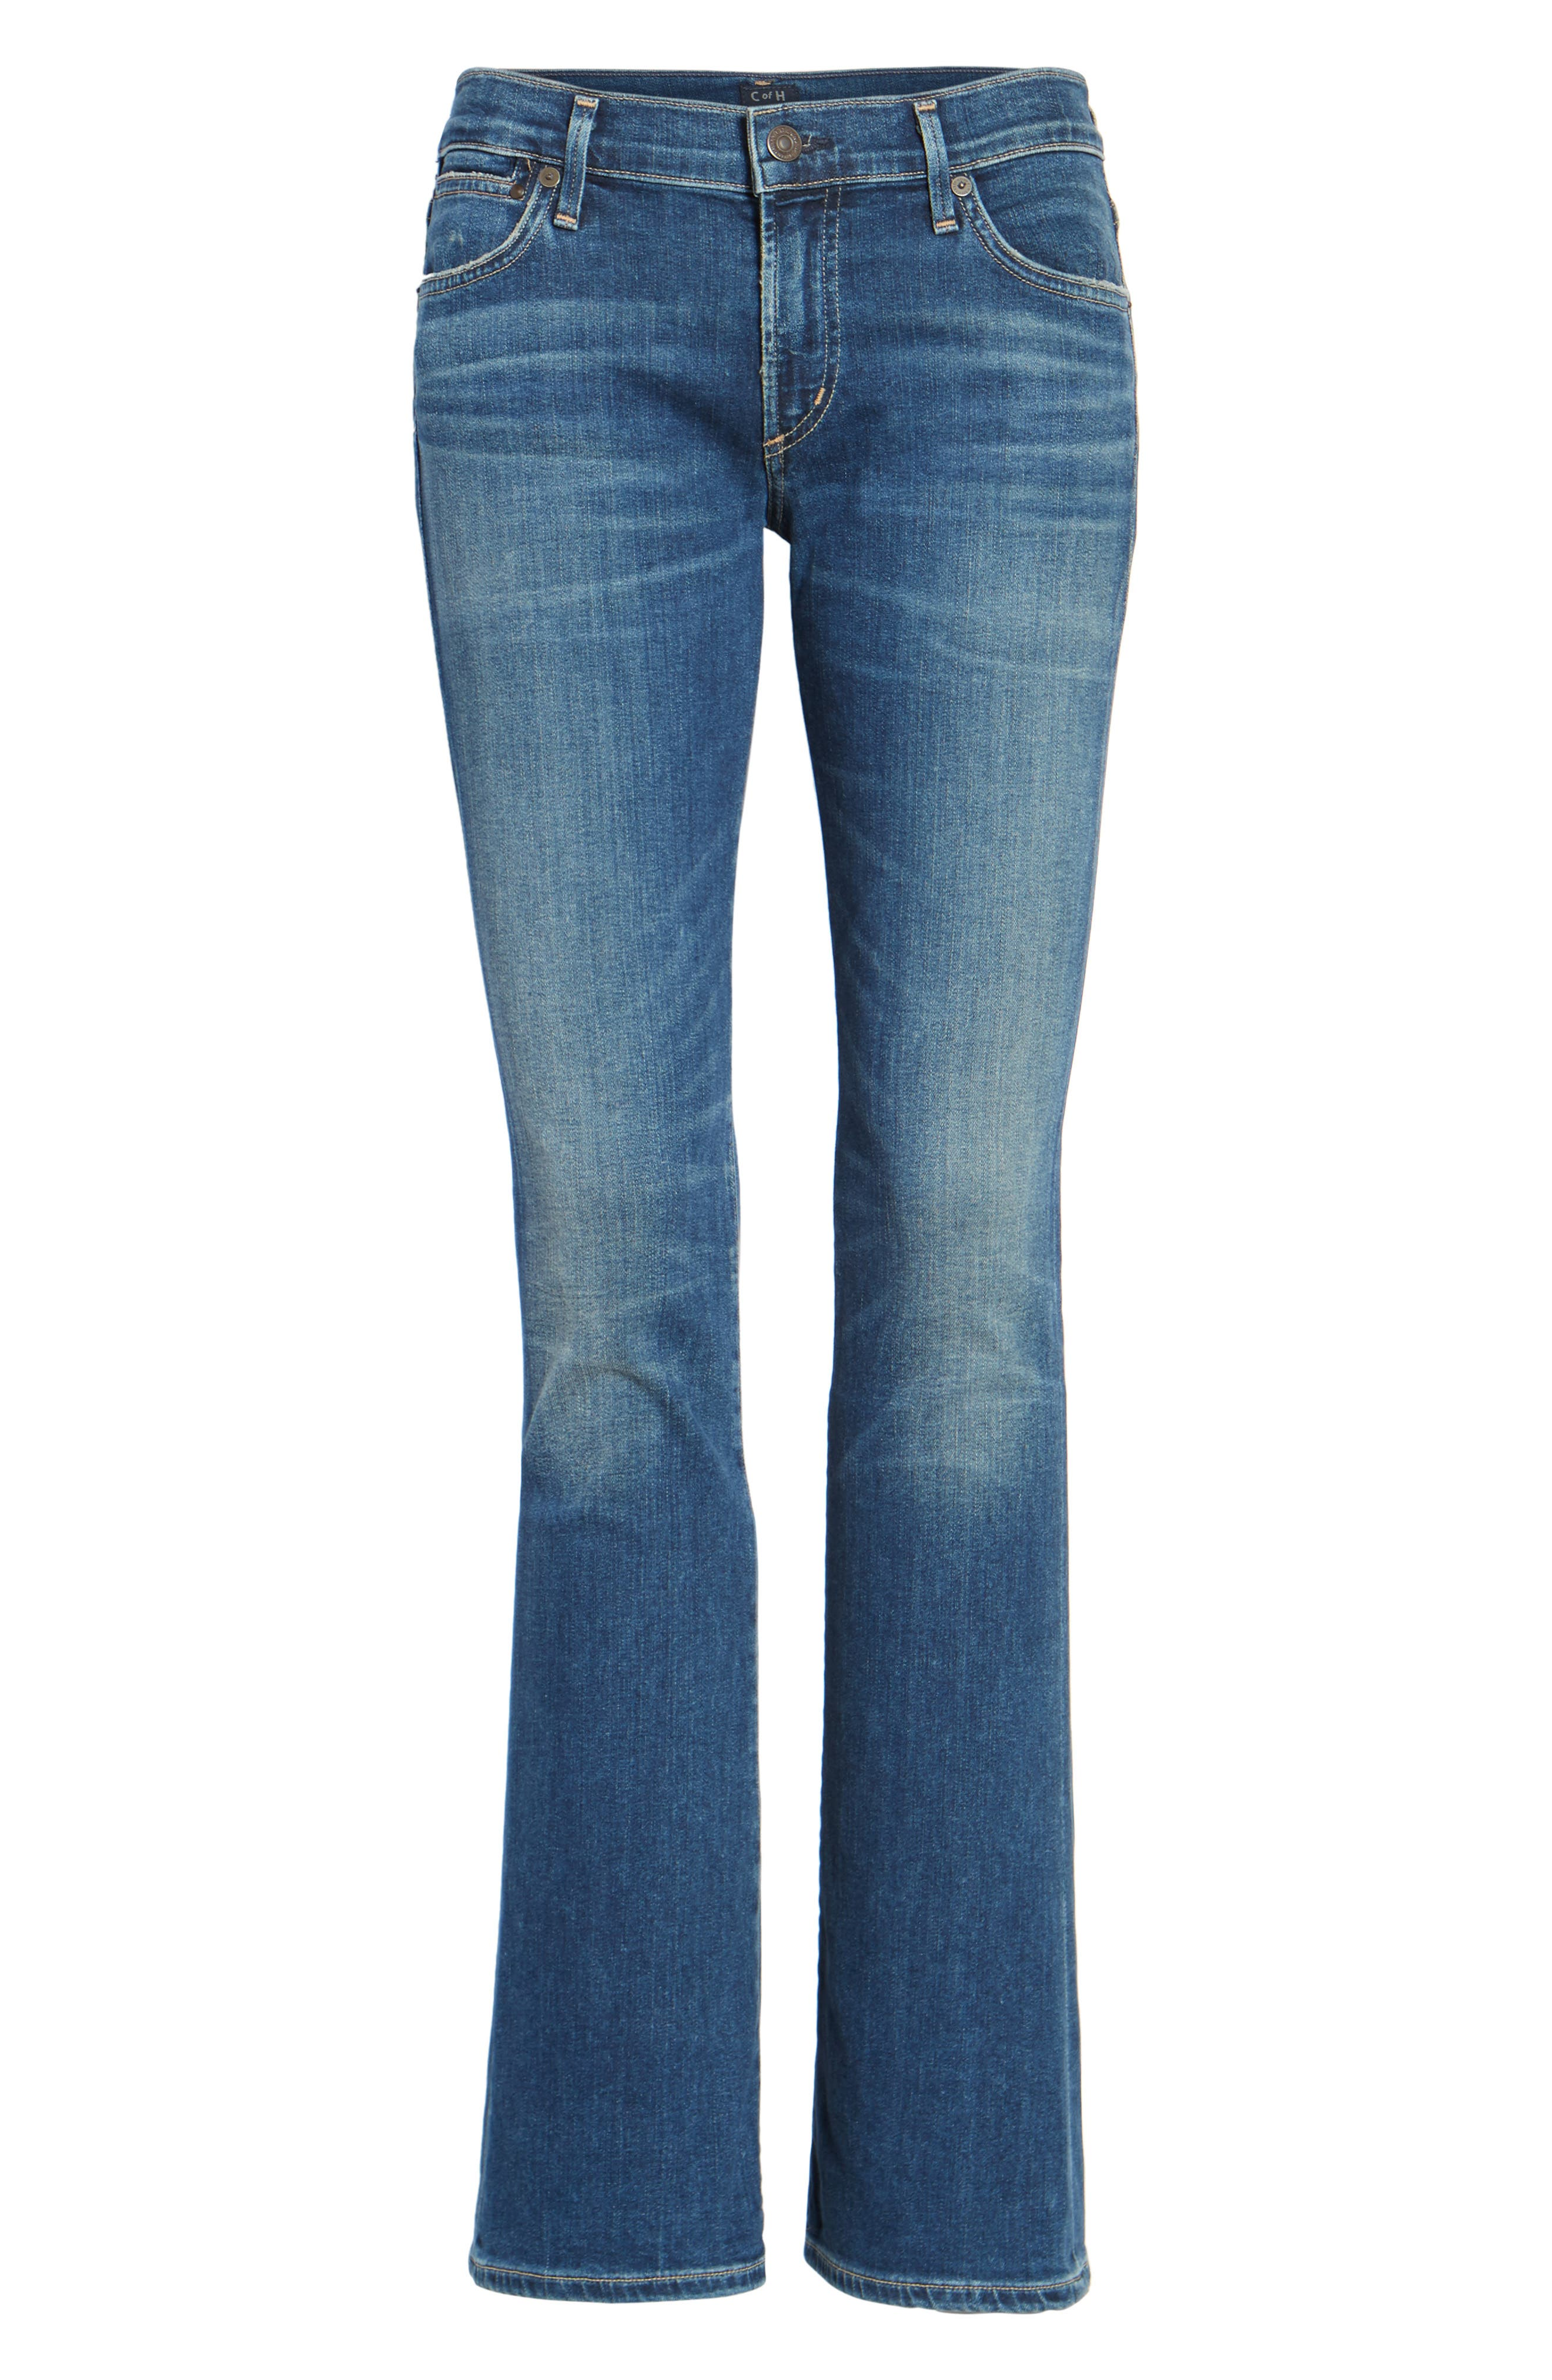 CITIZENS OF HUMANITY, 'Emannuelle' Bootcut Jeans, Main thumbnail 1, color, MODERN LOVE